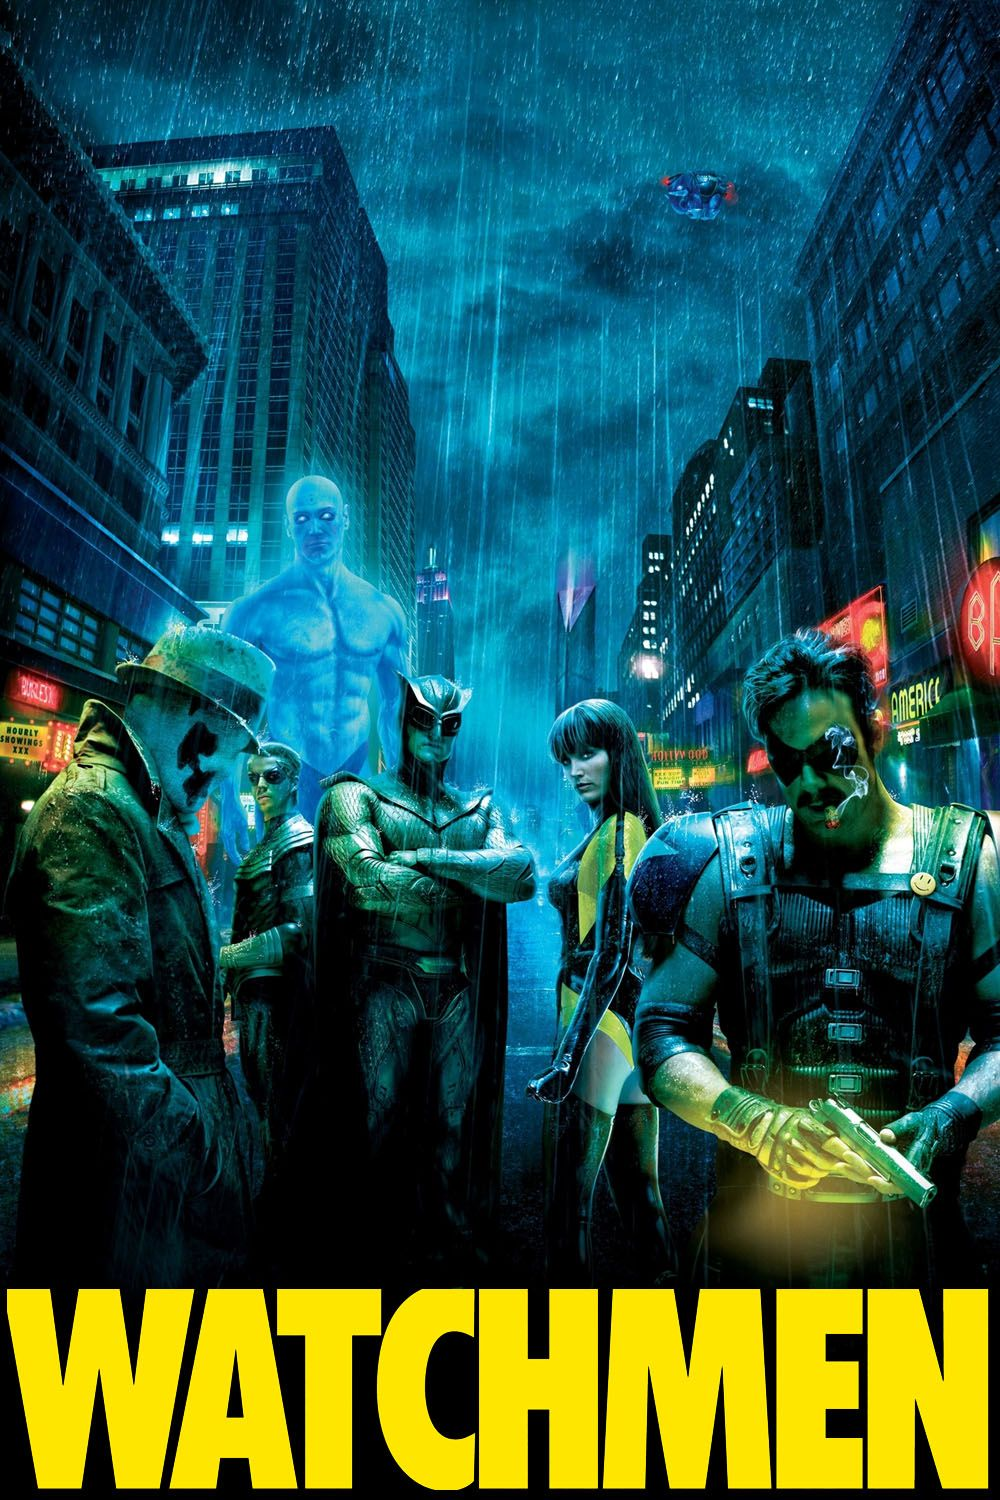 Movie Posters Watchmen Marvel Movie Posters Good Movies